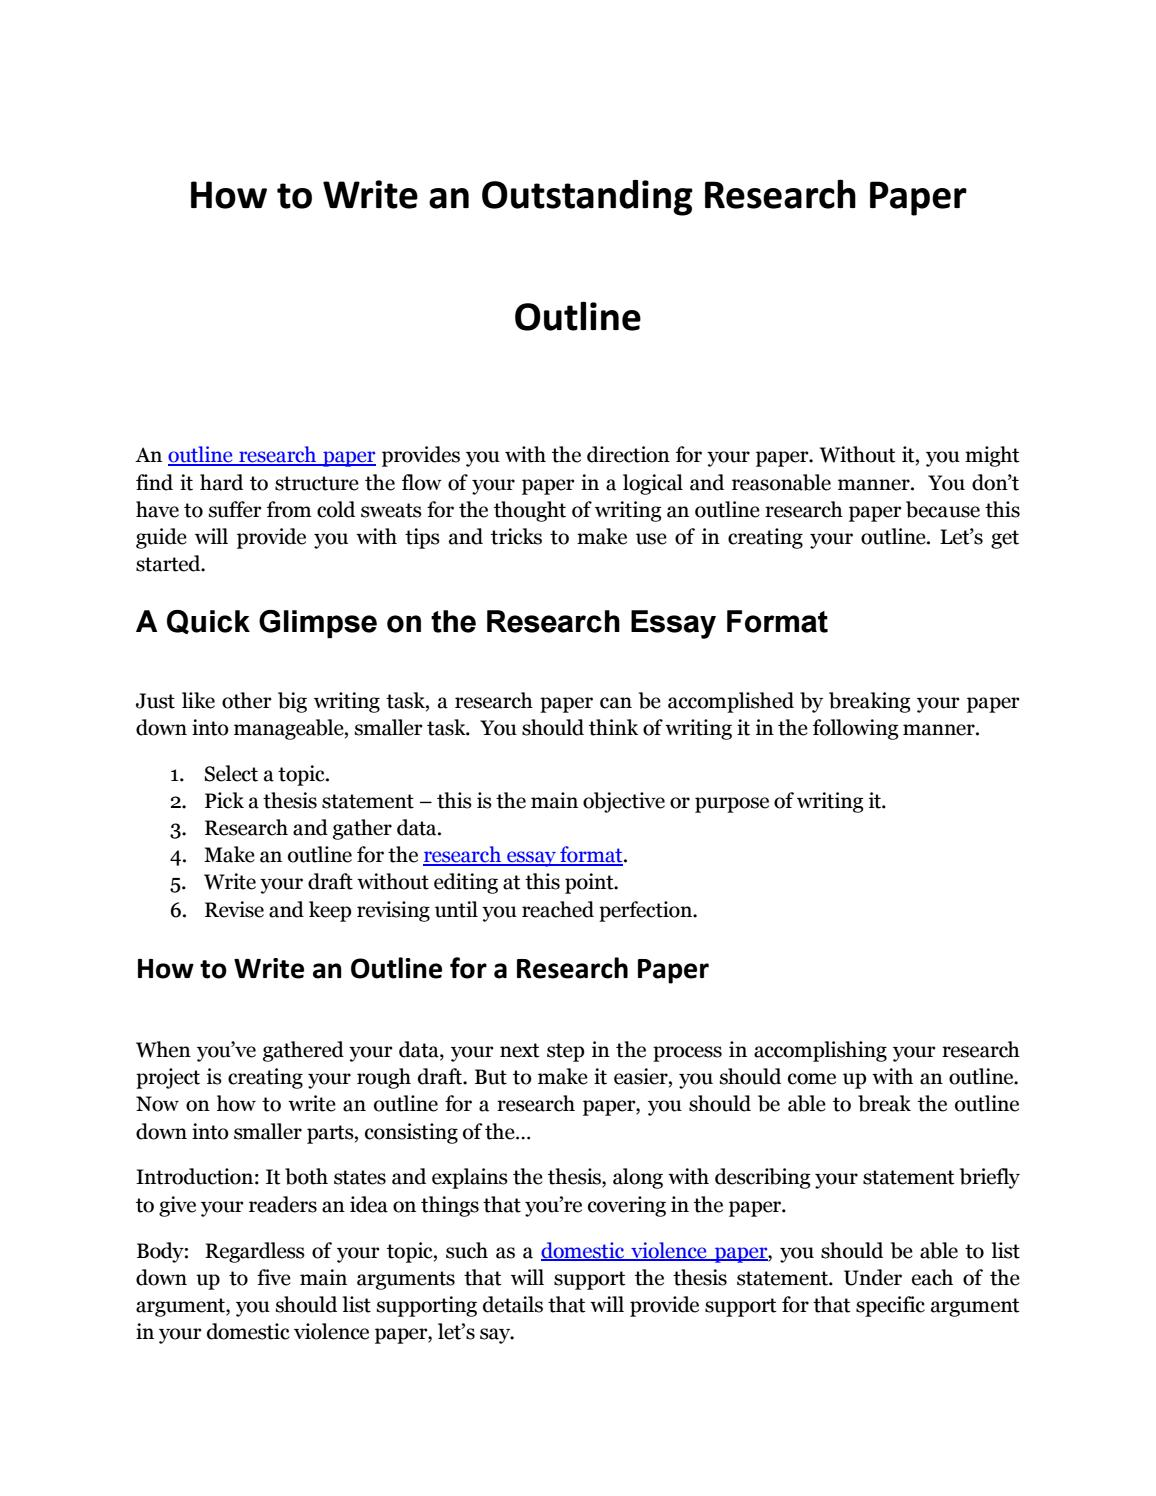 how to write proposal for thesis book here write for proposal to how thesis